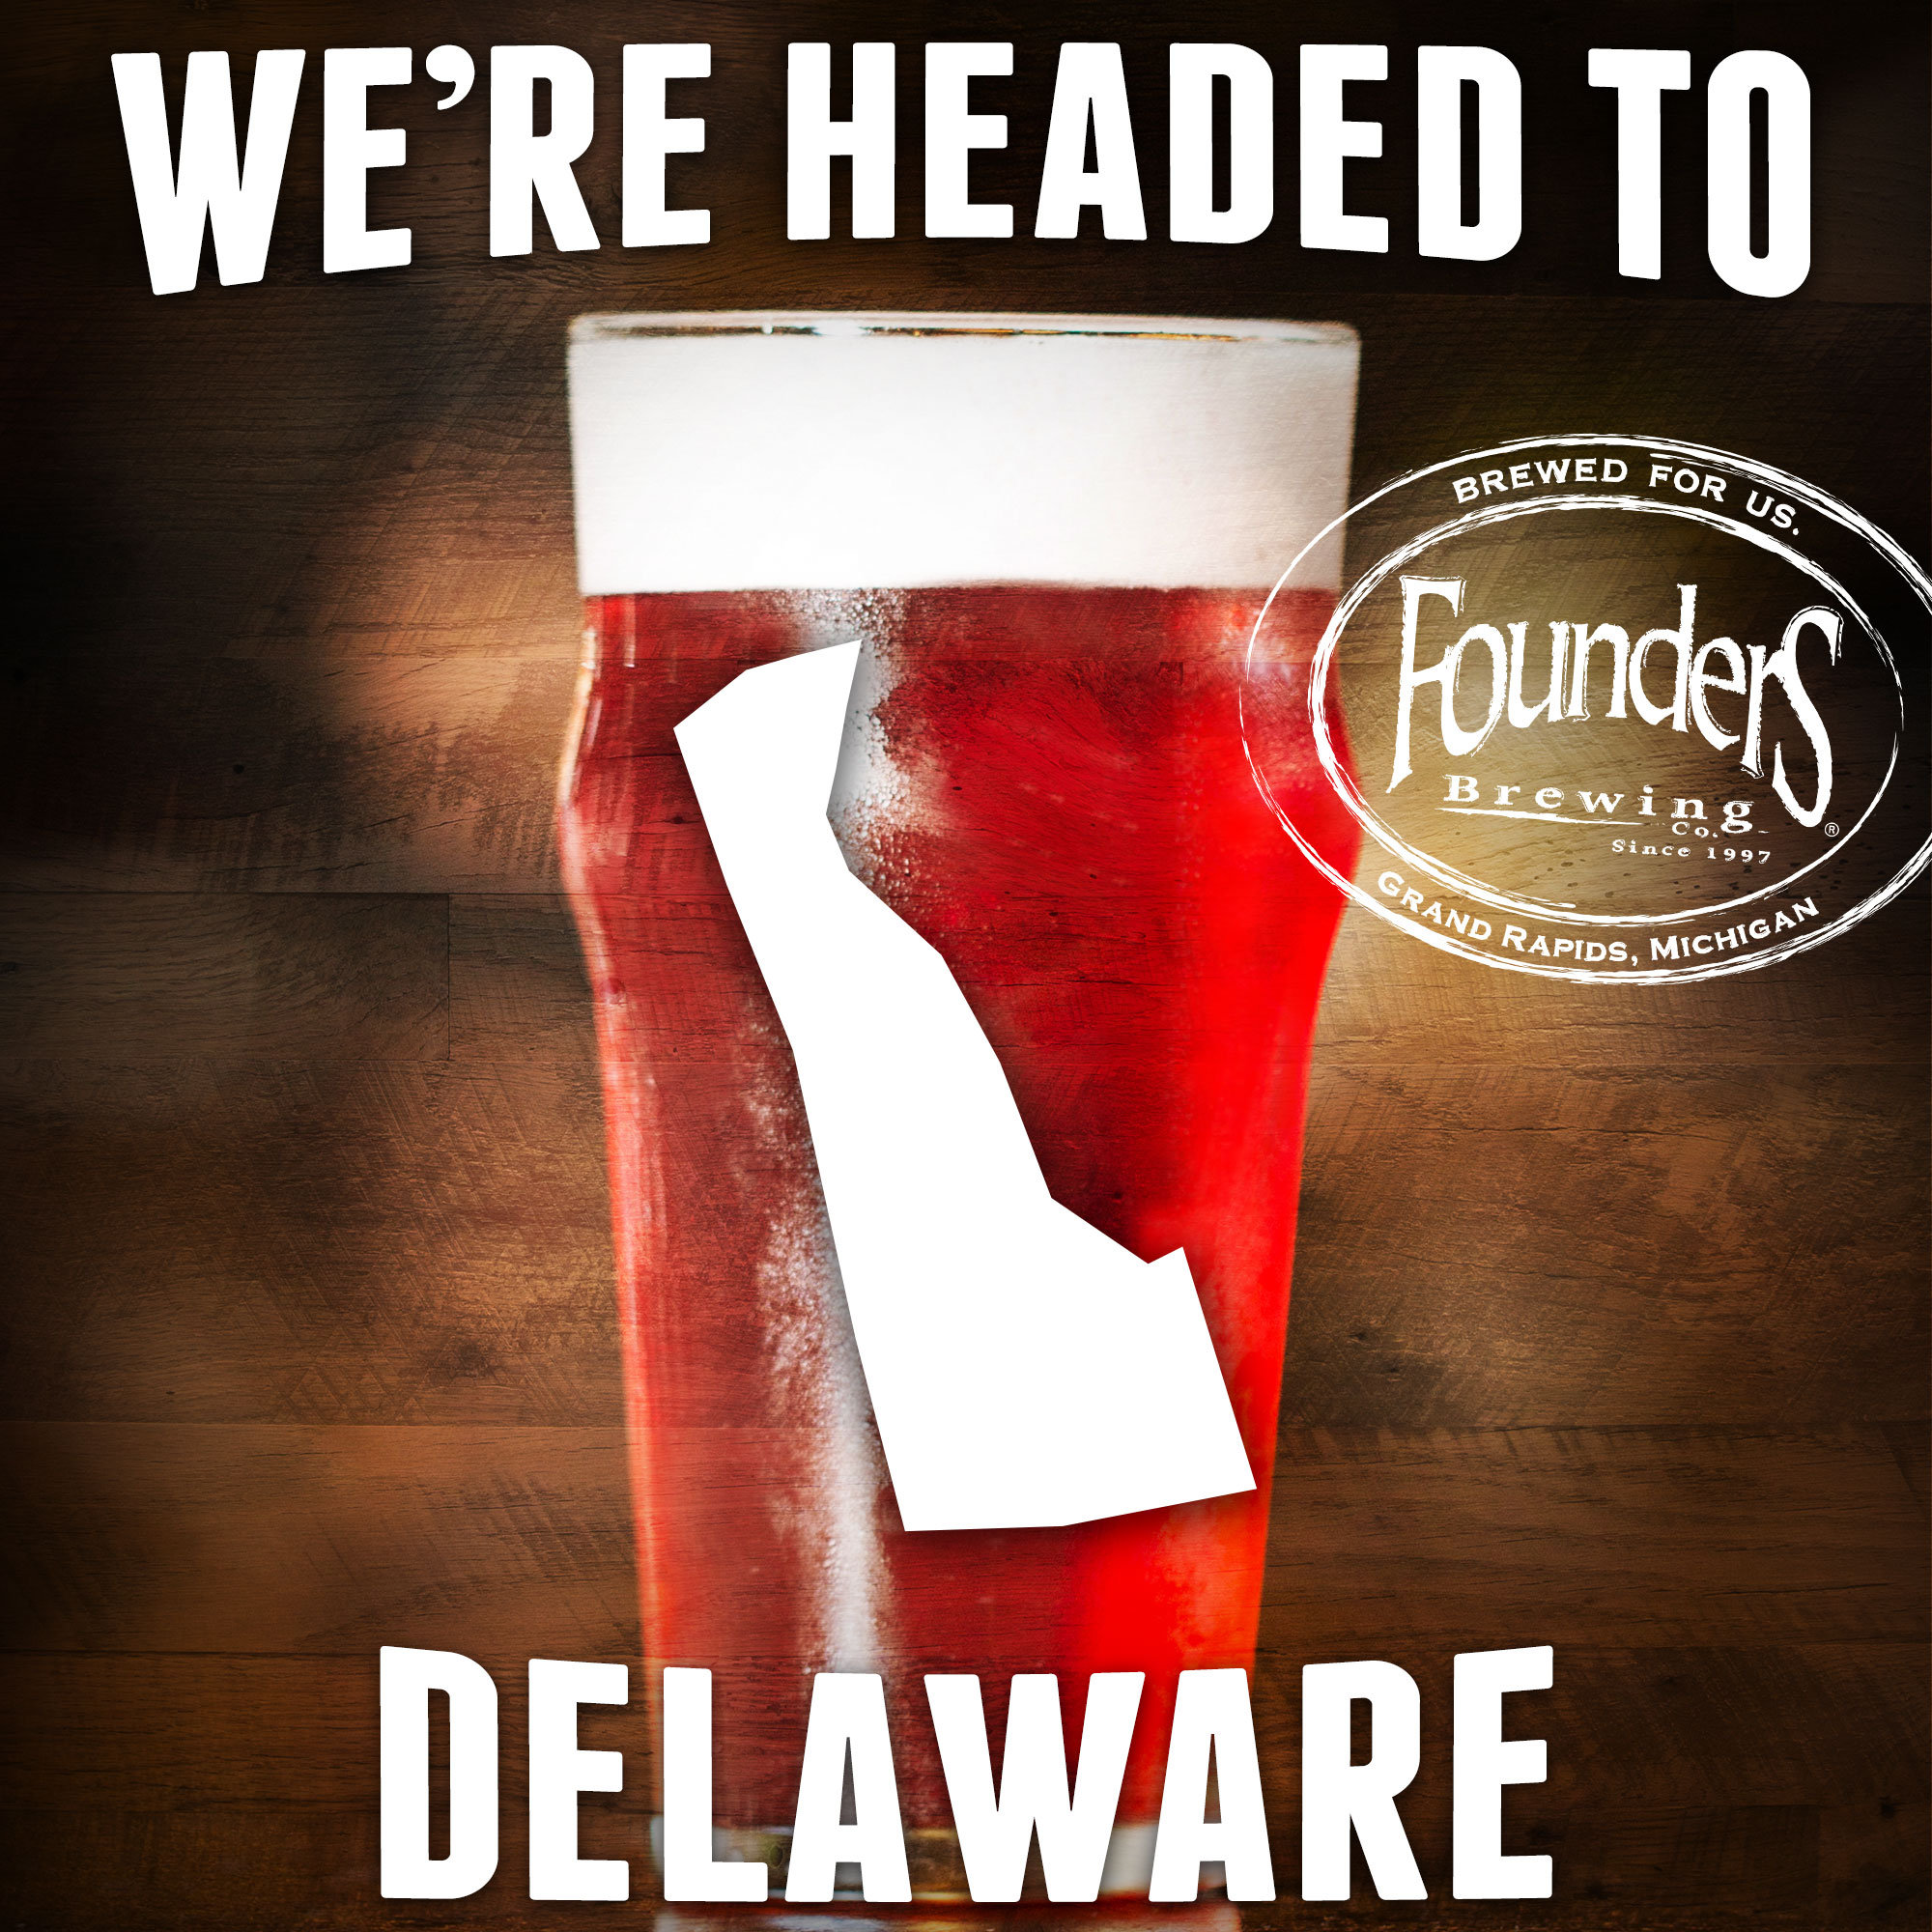 Founders promotion showing that they're coming to Delaware